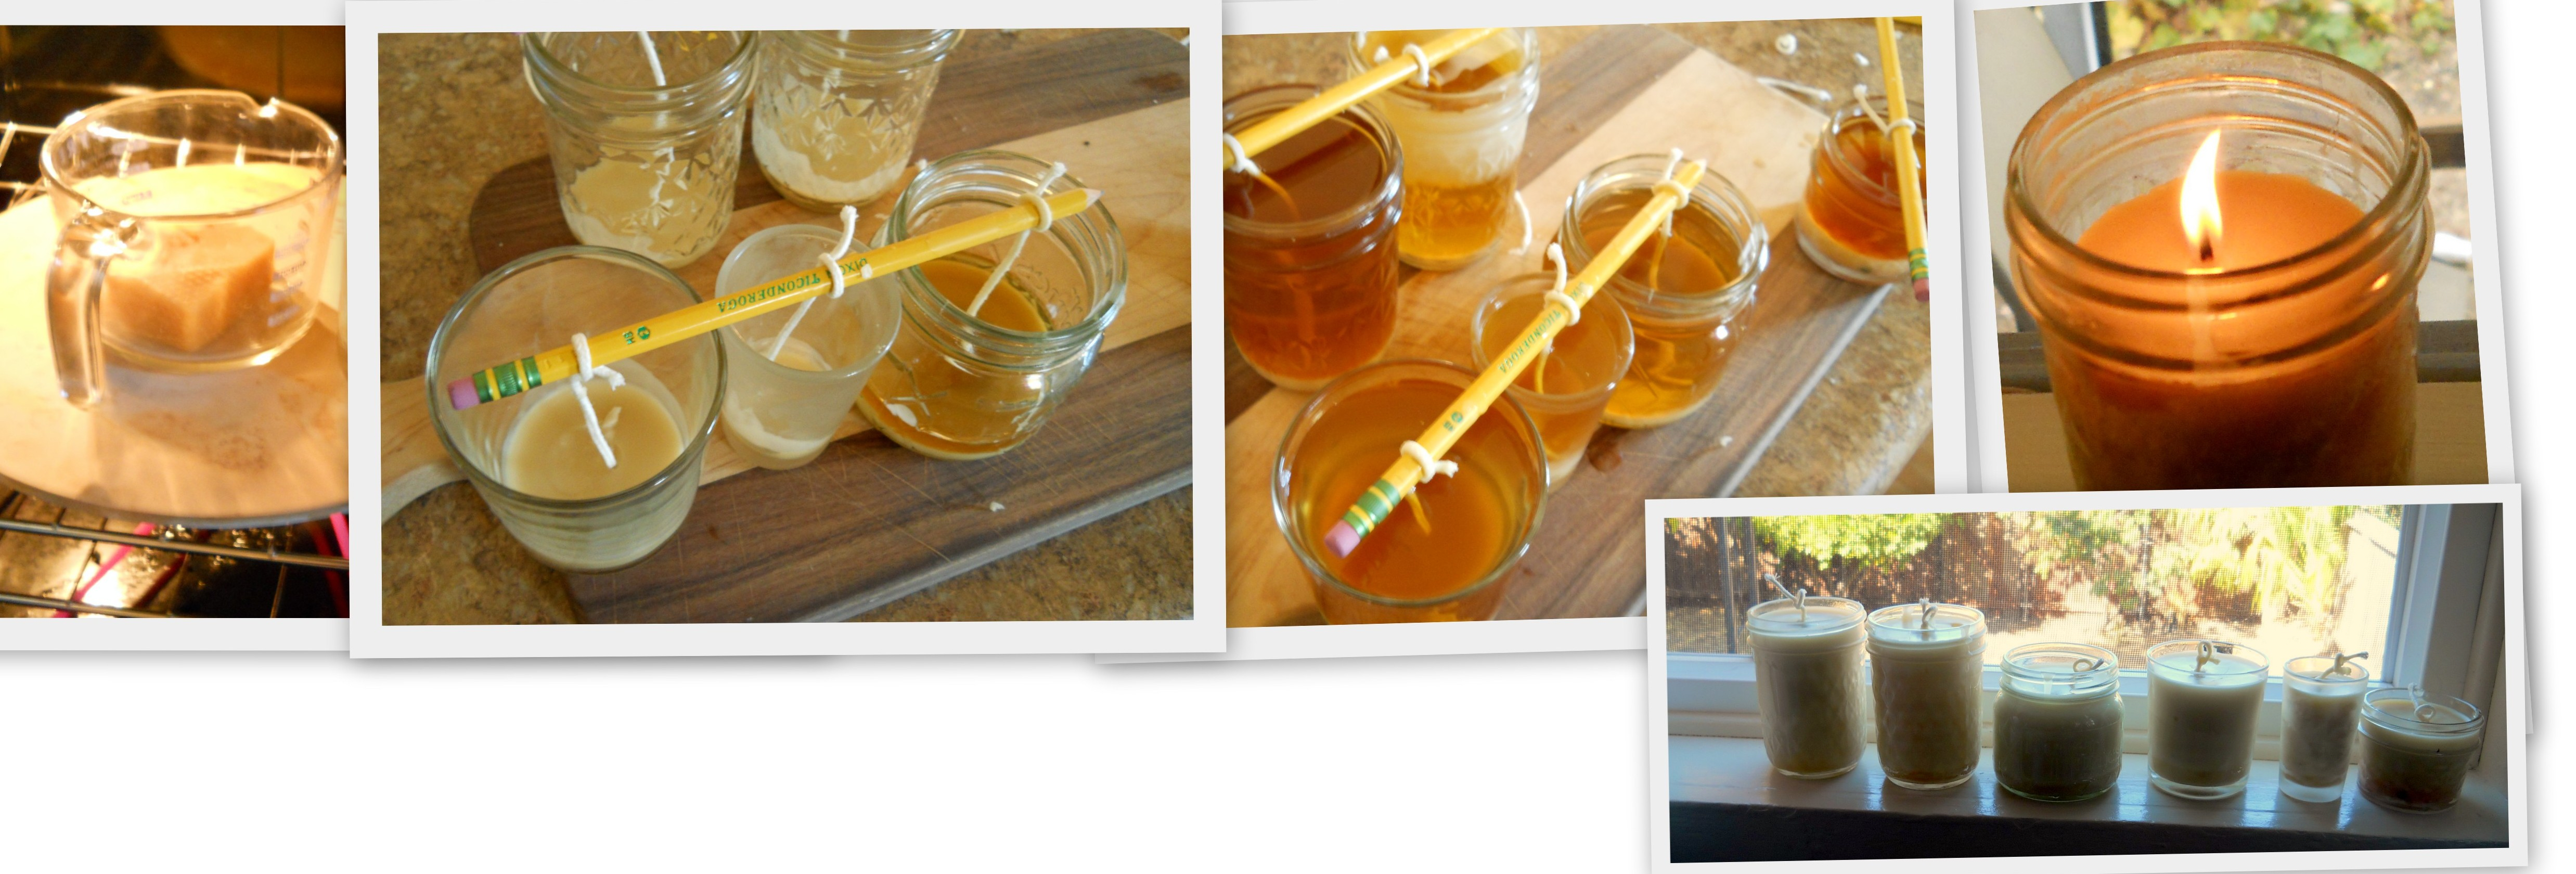 how to make beeswax at home